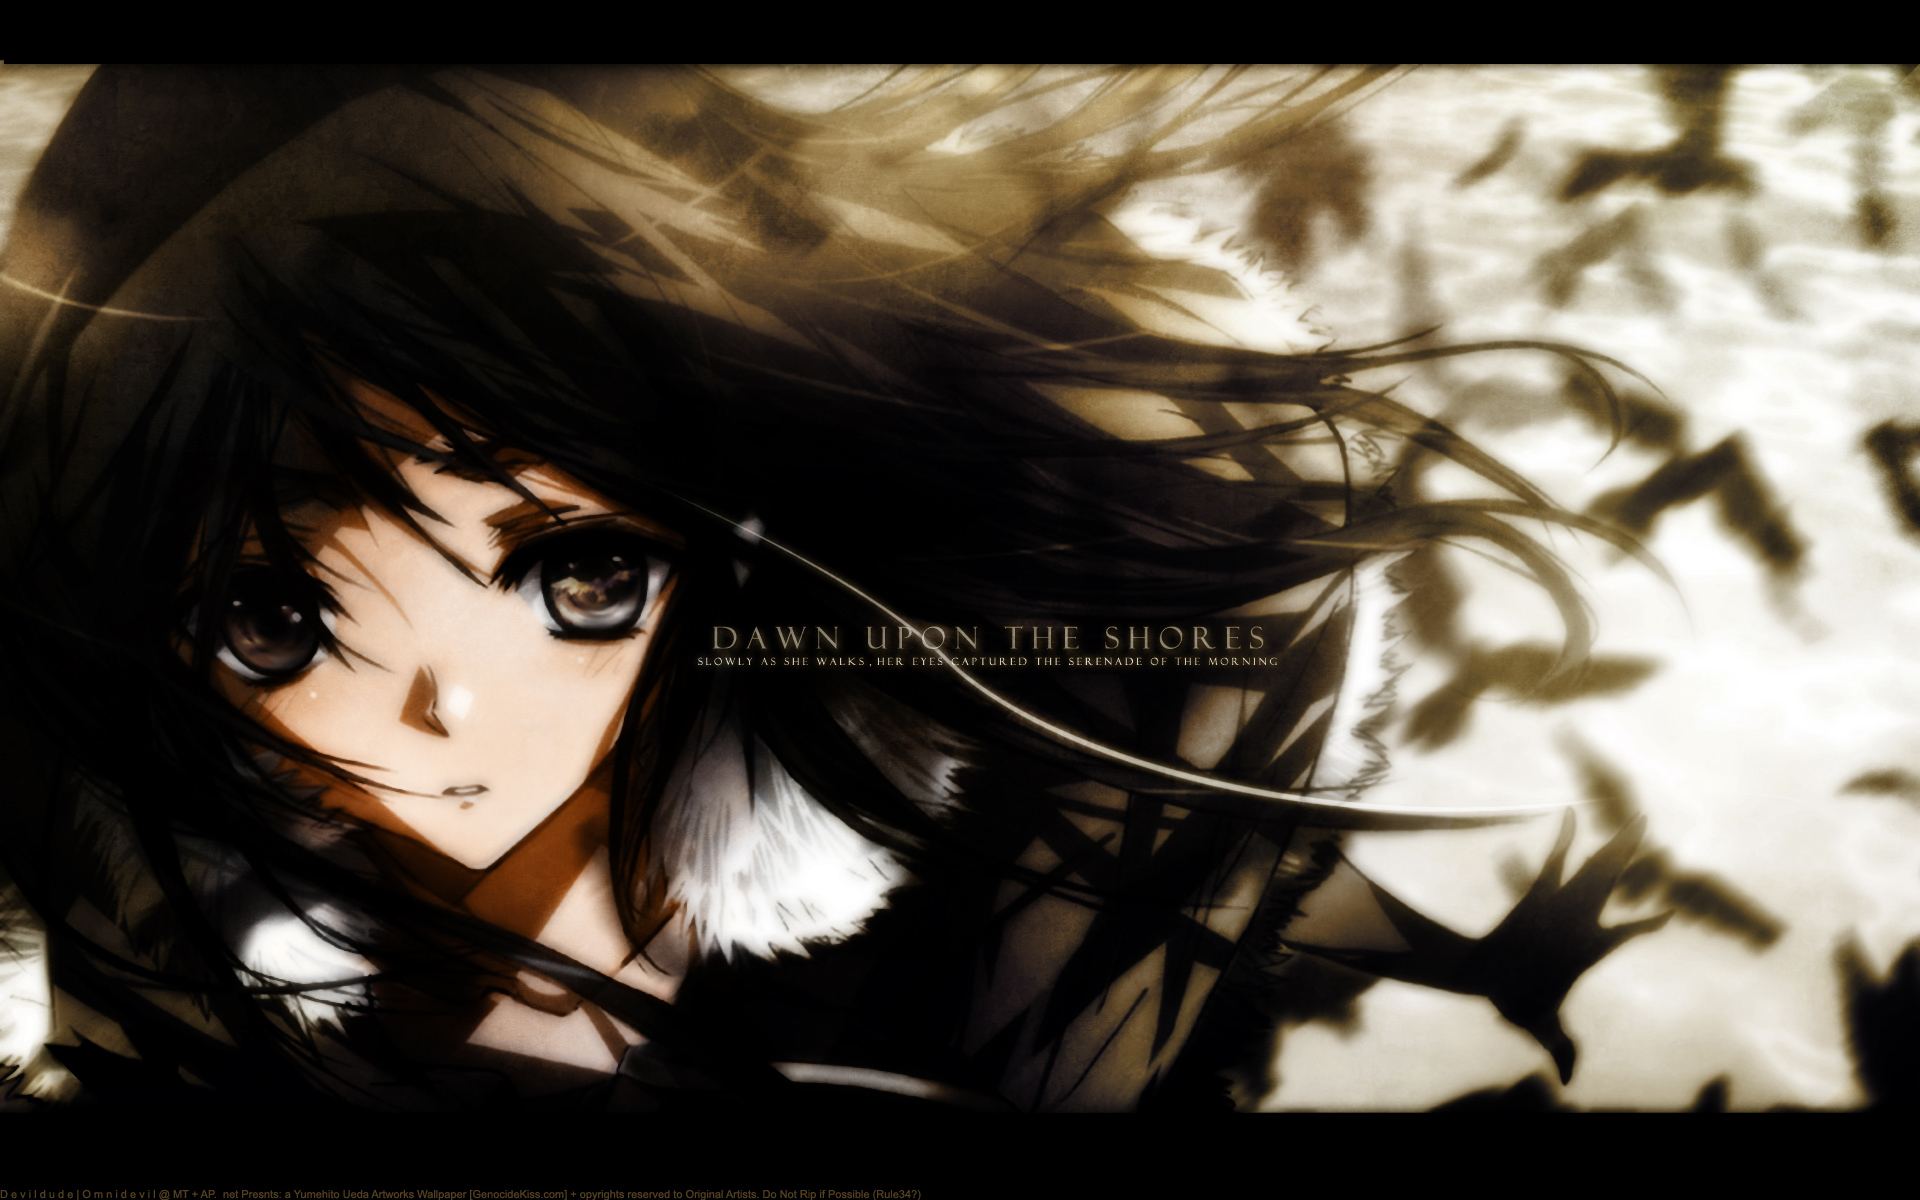 Free Download Tower Of God Wallpaper 112848 1920x1200 For